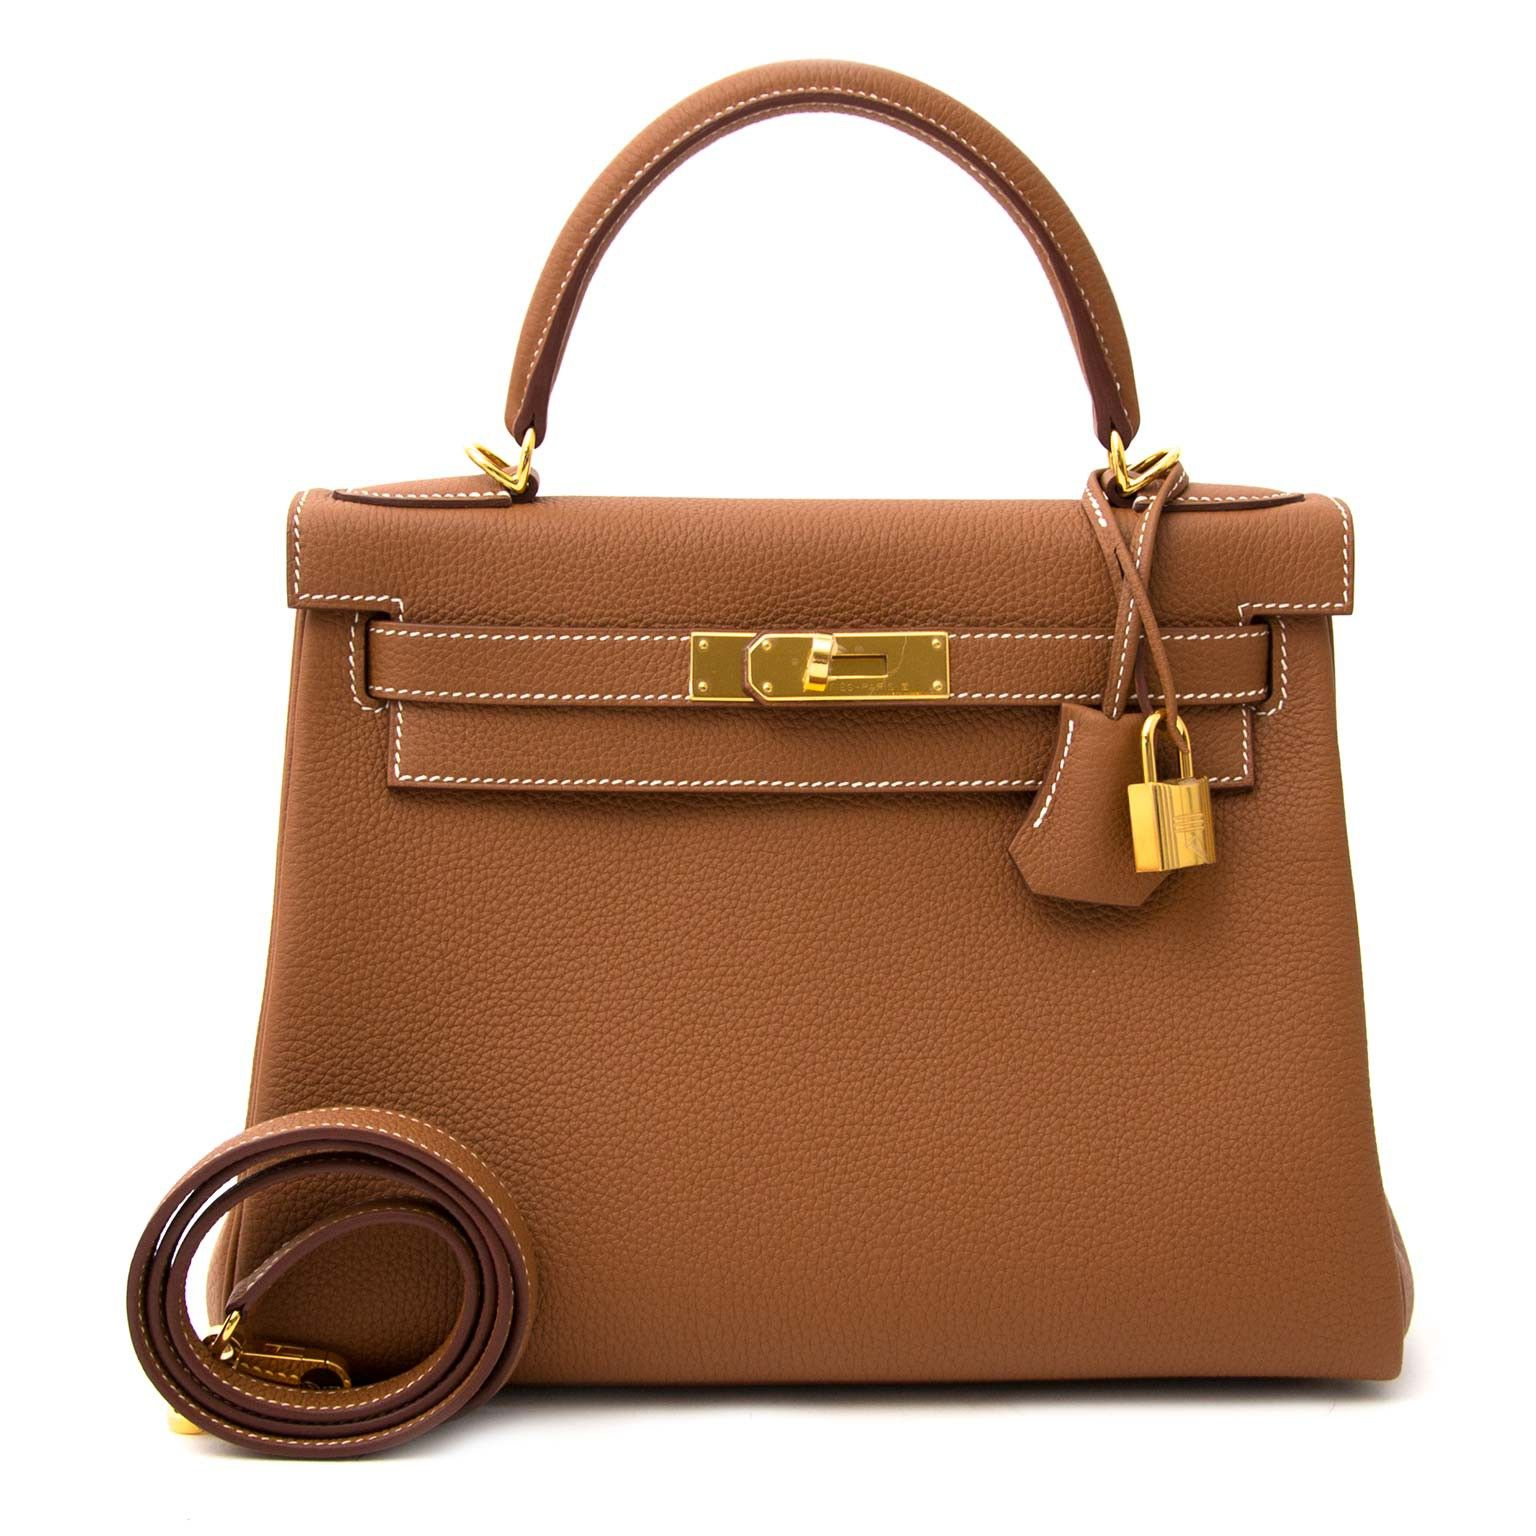 67a60dc0e52 ... usa hermès kelly 28 togo gold ghw now online at labellov 100 authentic  68252 009cc